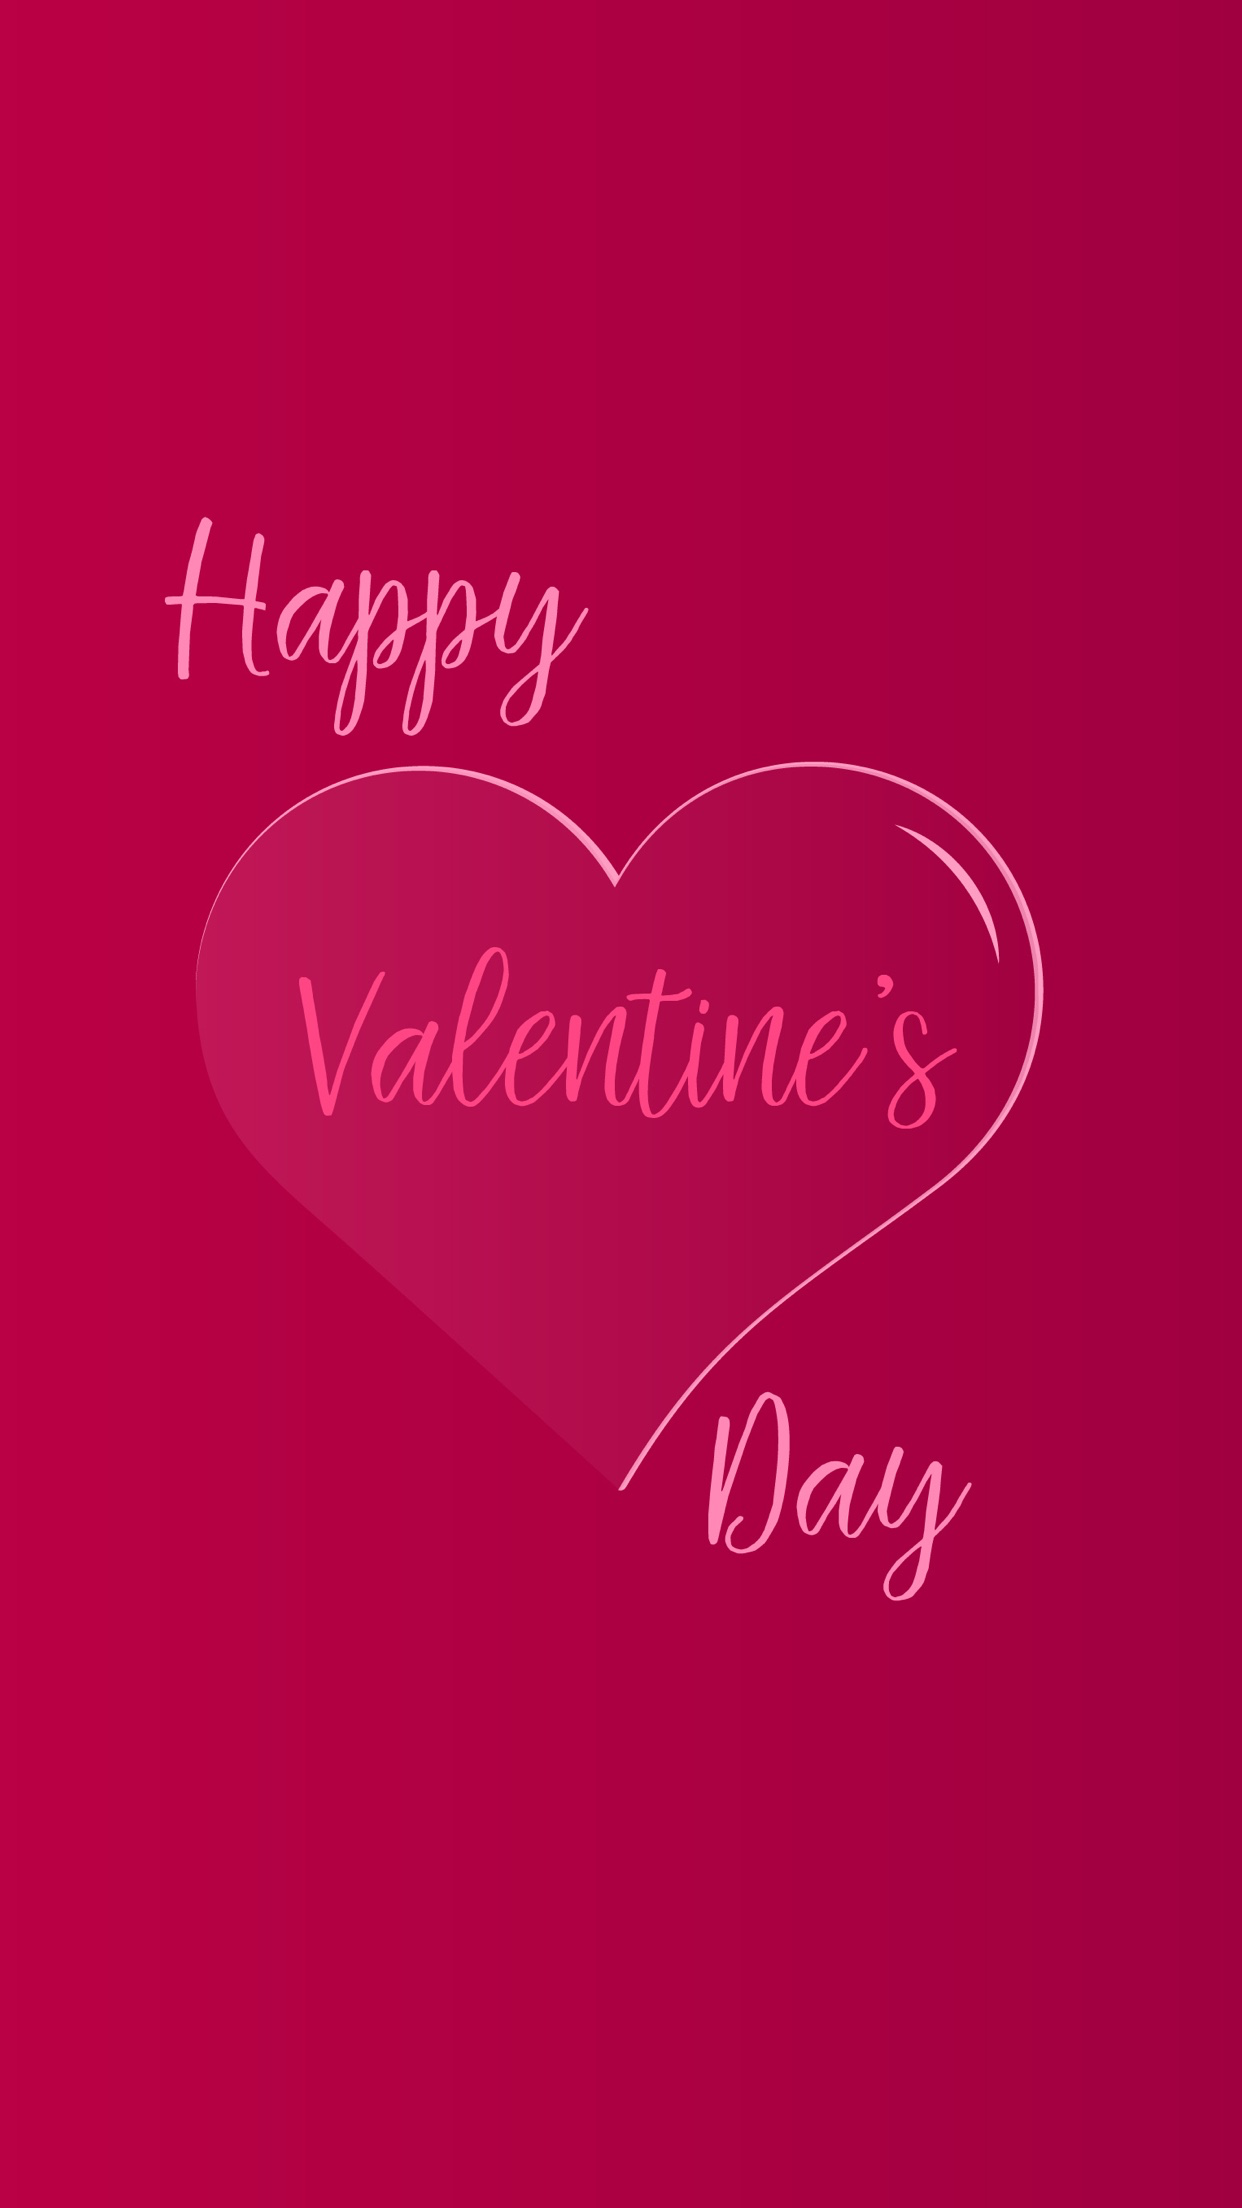 Iphone Wallpaper Happy Valentines Day Images Valentines Wallpaper Valentine S Day Quotes